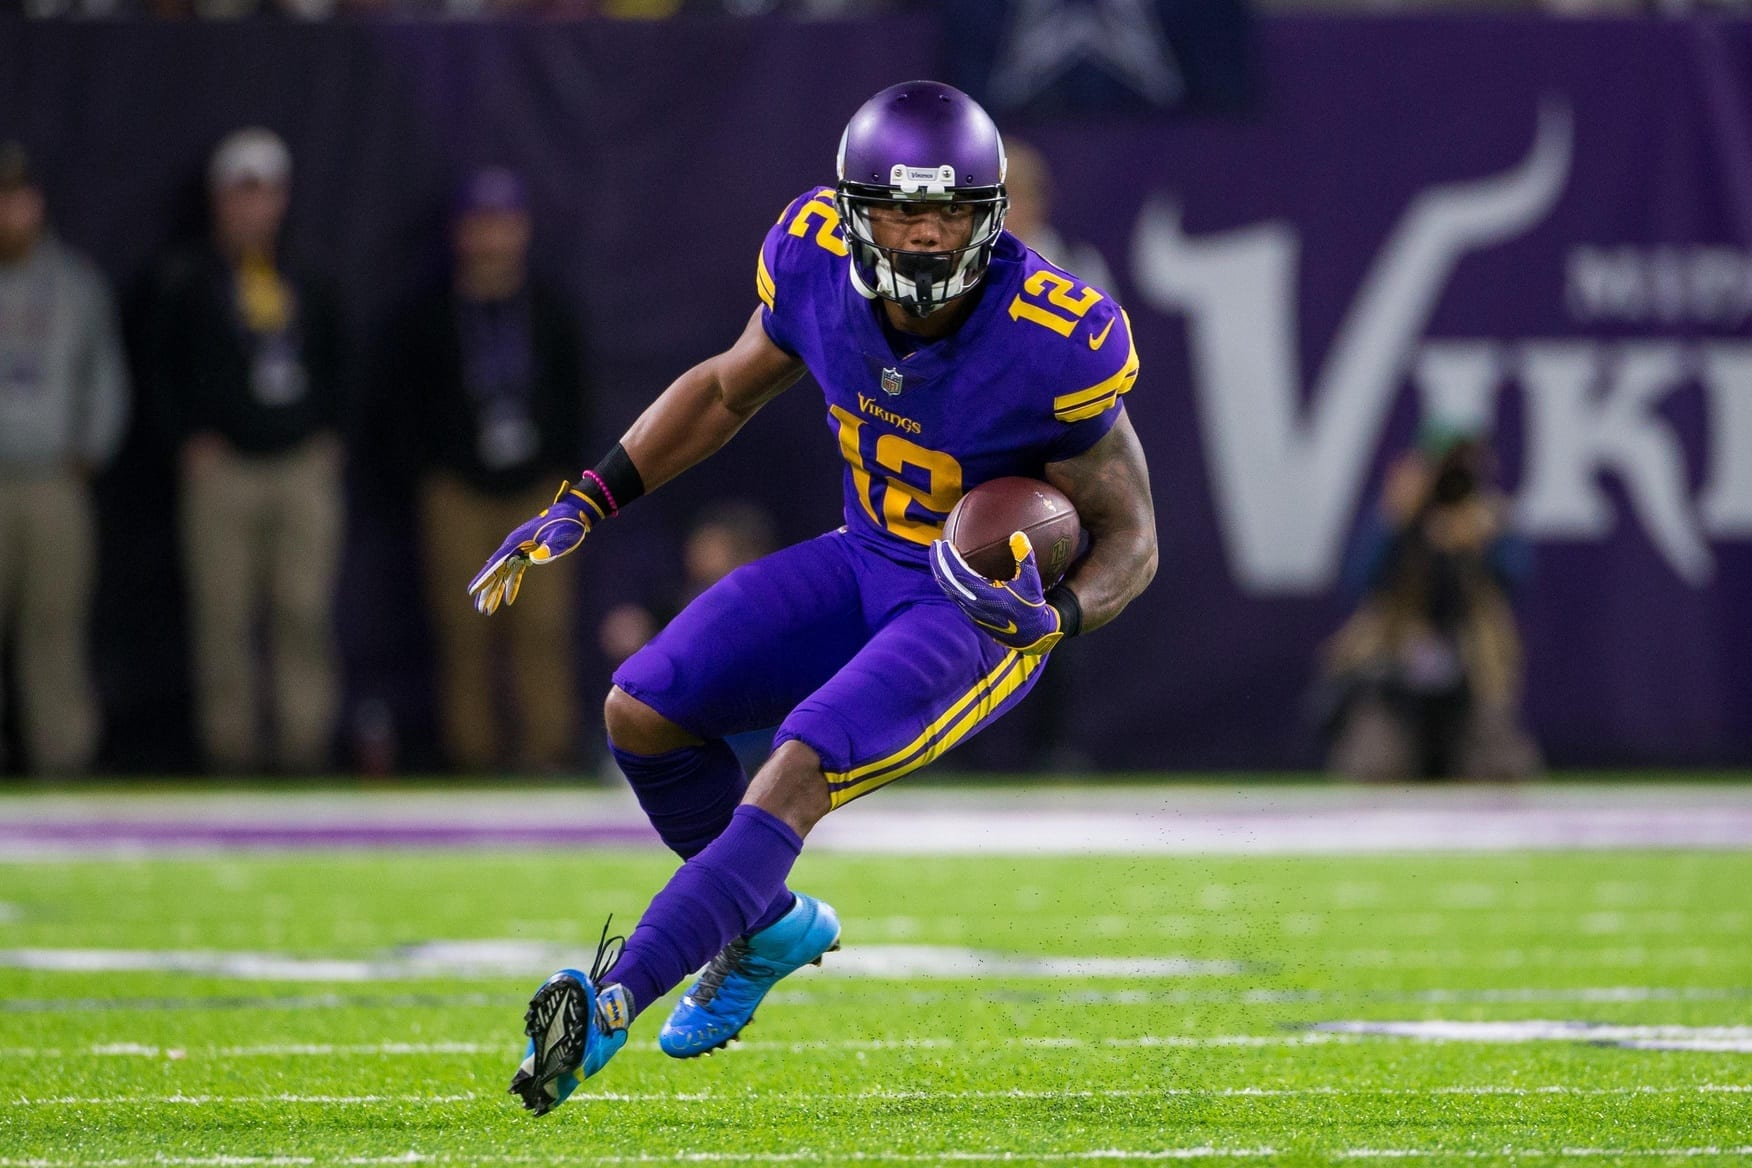 b6cb8263830 Eagles Sign Former AAF WR Charles Johnson To One-Year Contract ...